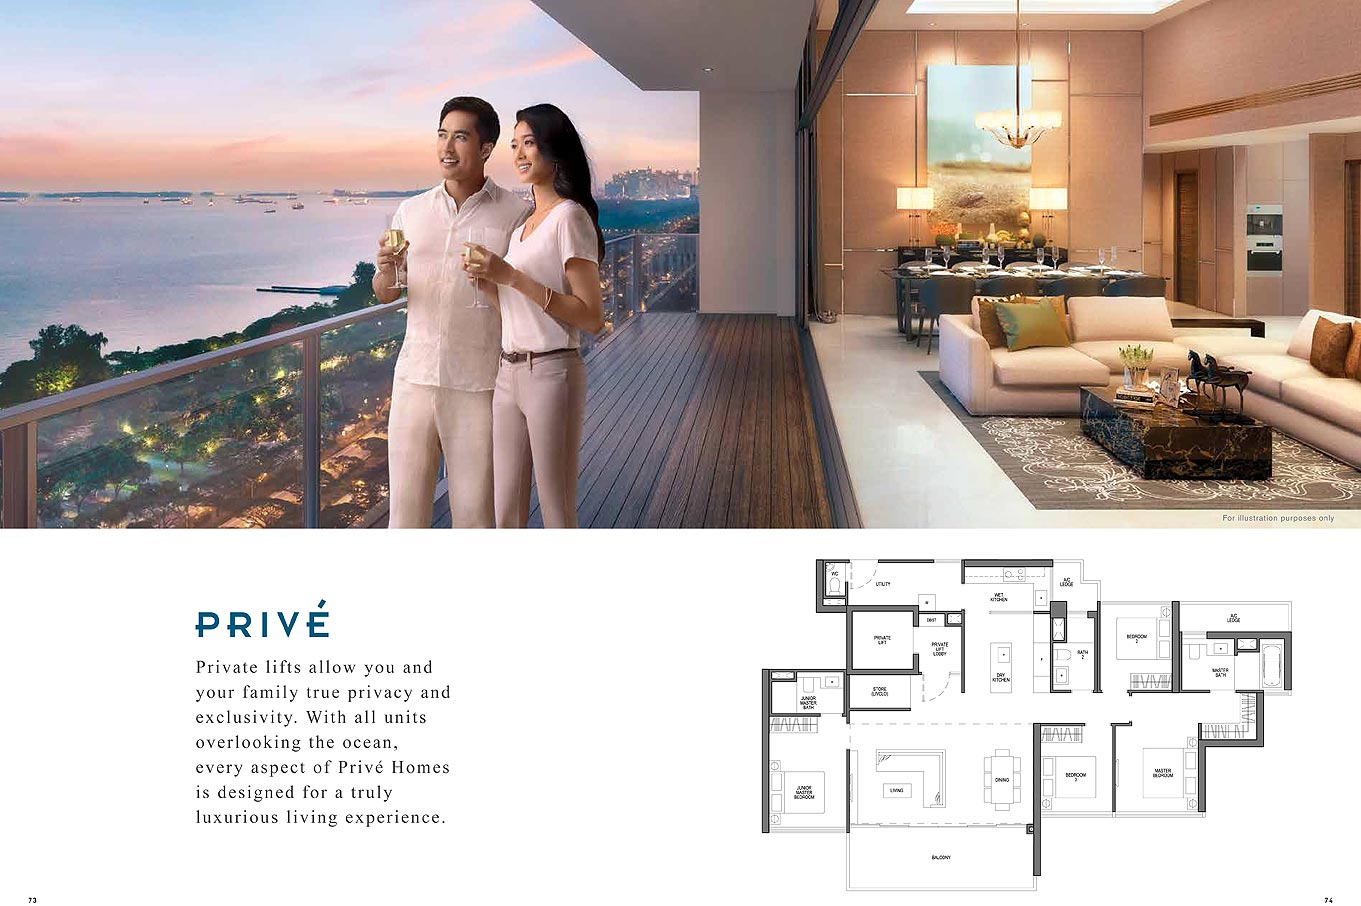 Seaside-Residences-Prive